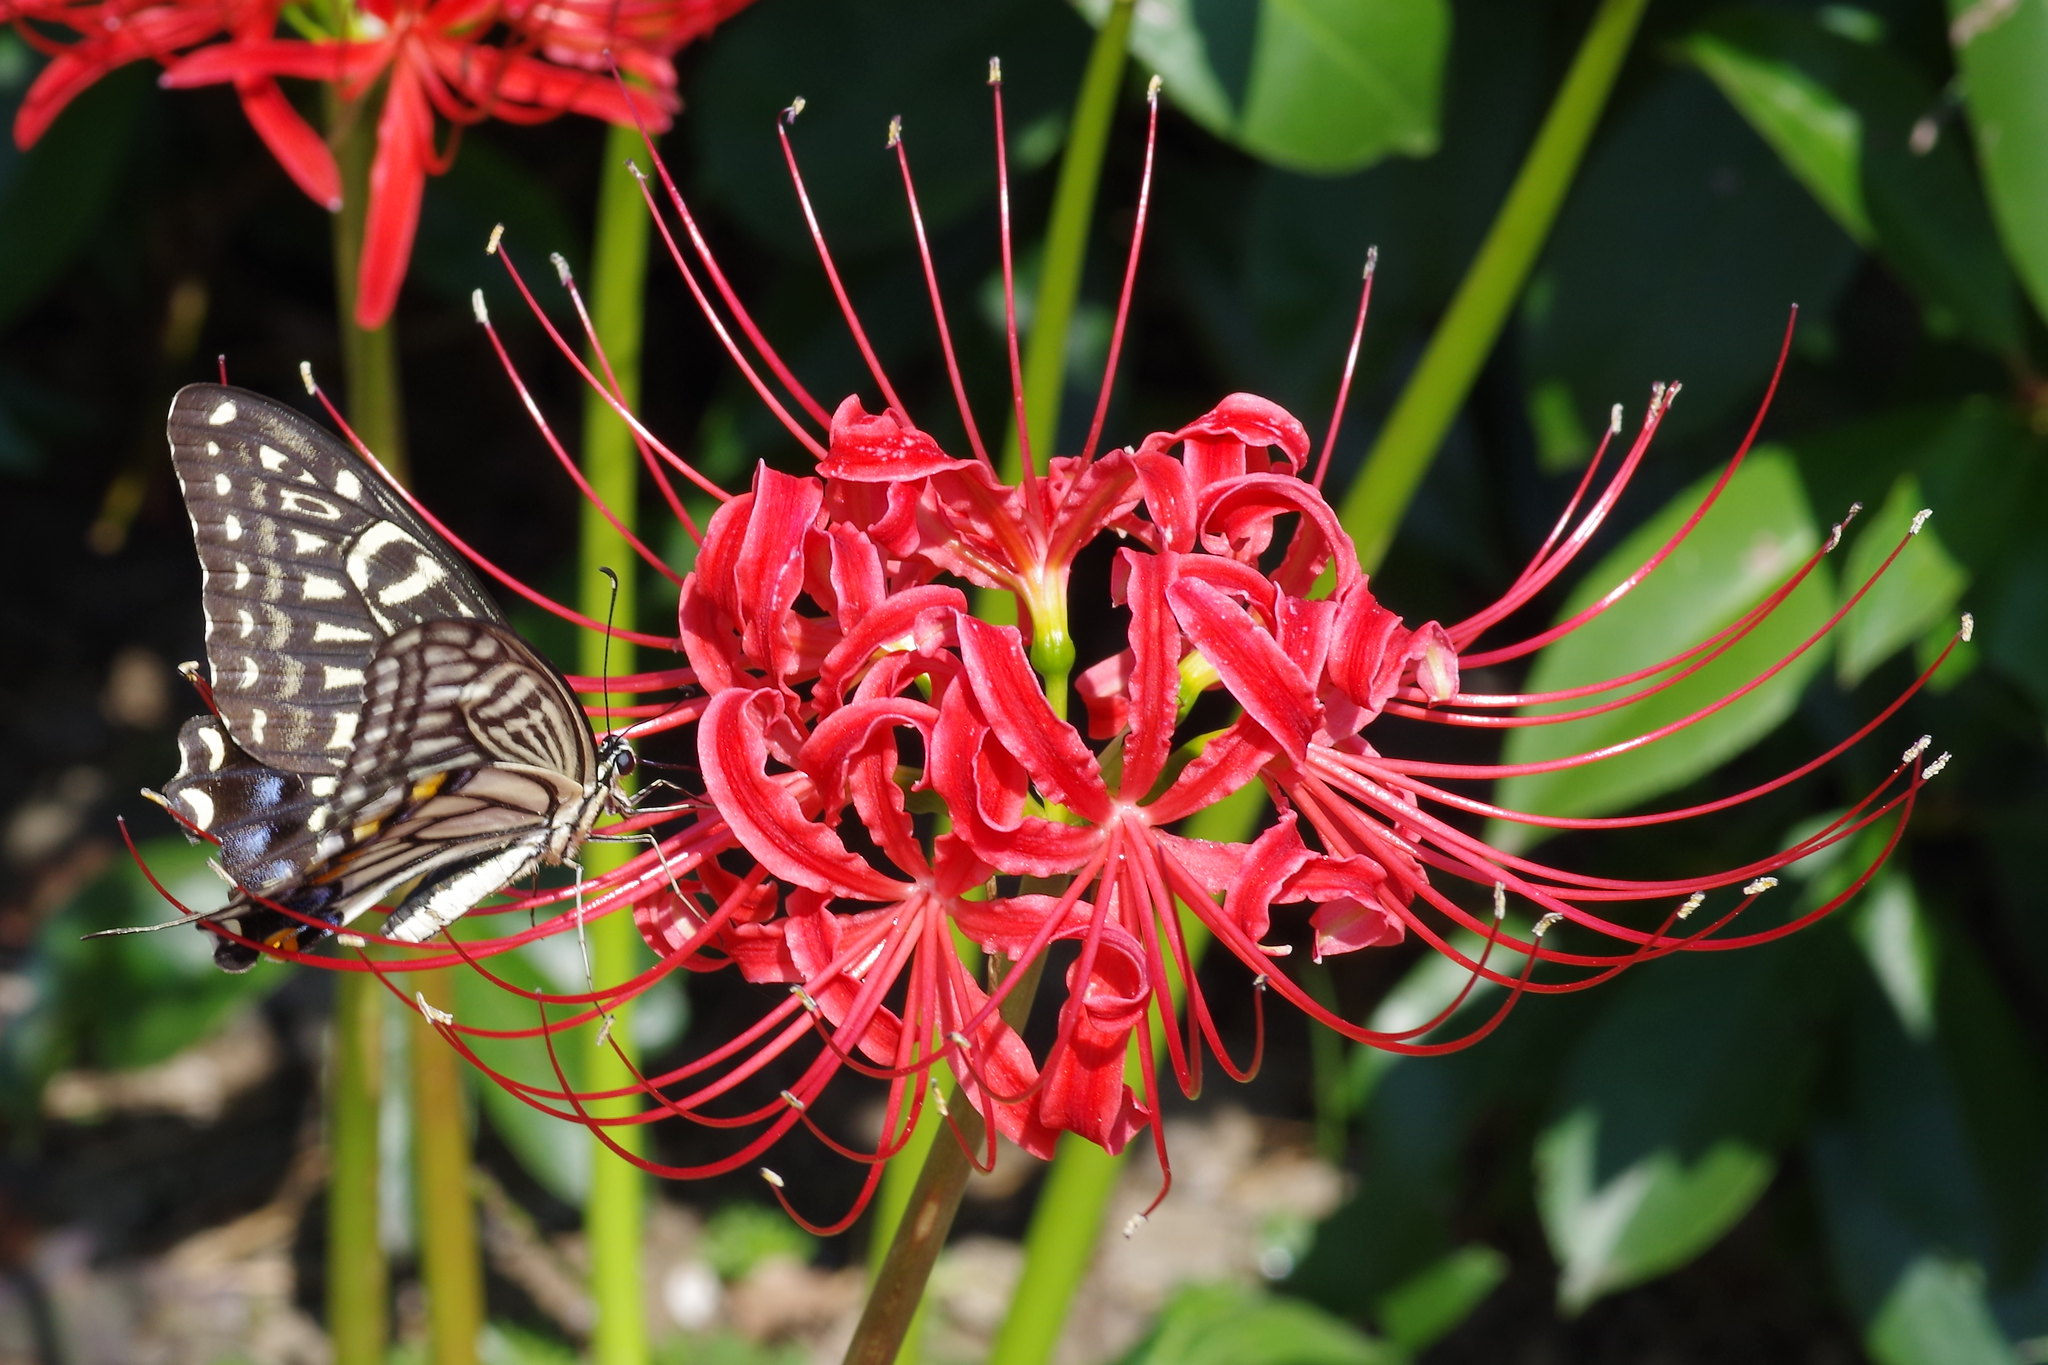 Lycoris radiata & butterfly